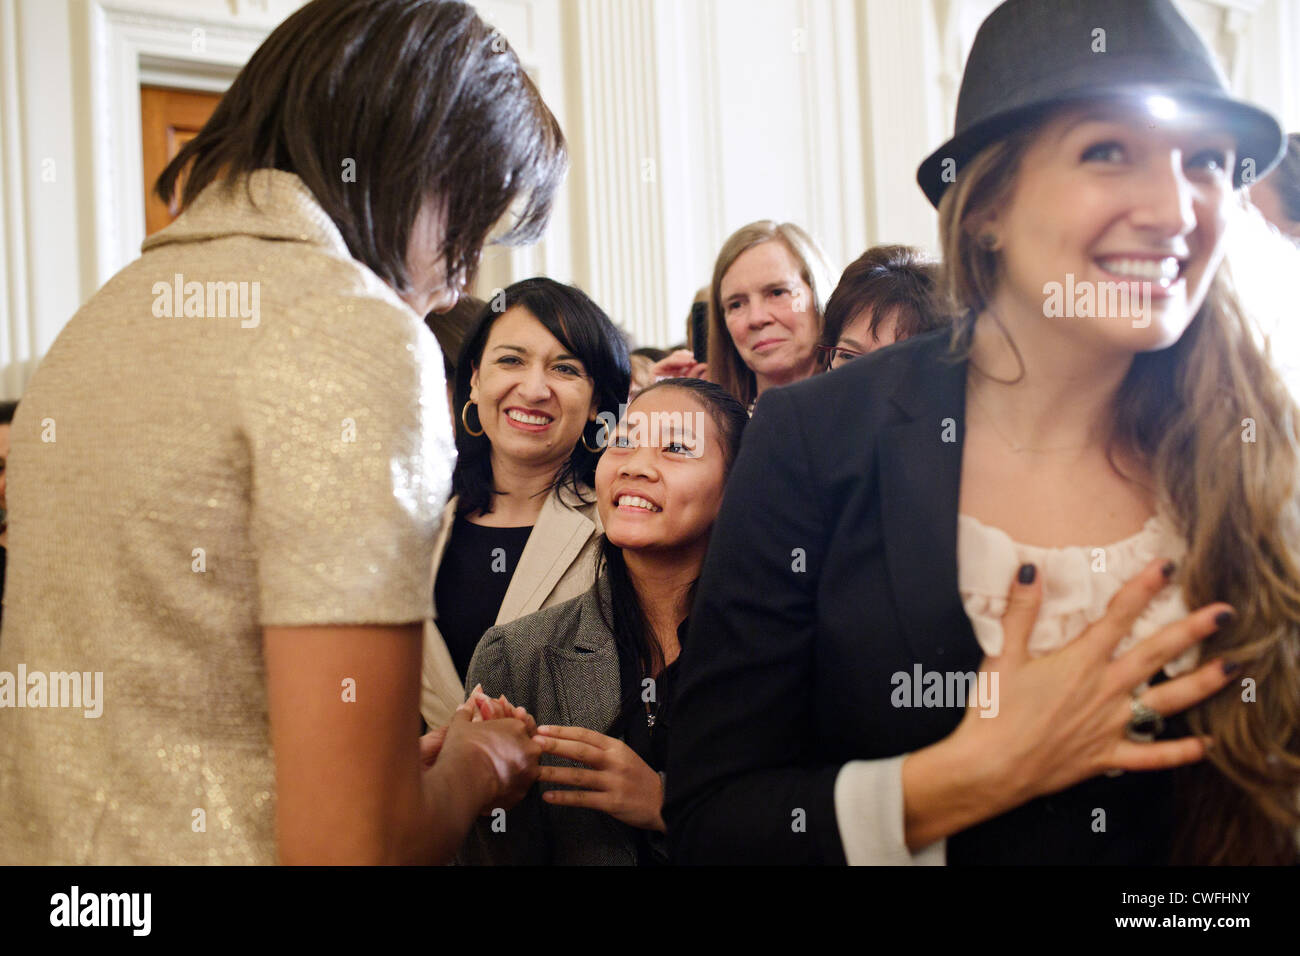 First Lady Michelle Obama greets guests during the International Women's Day reception in the East Room of the - Stock Image